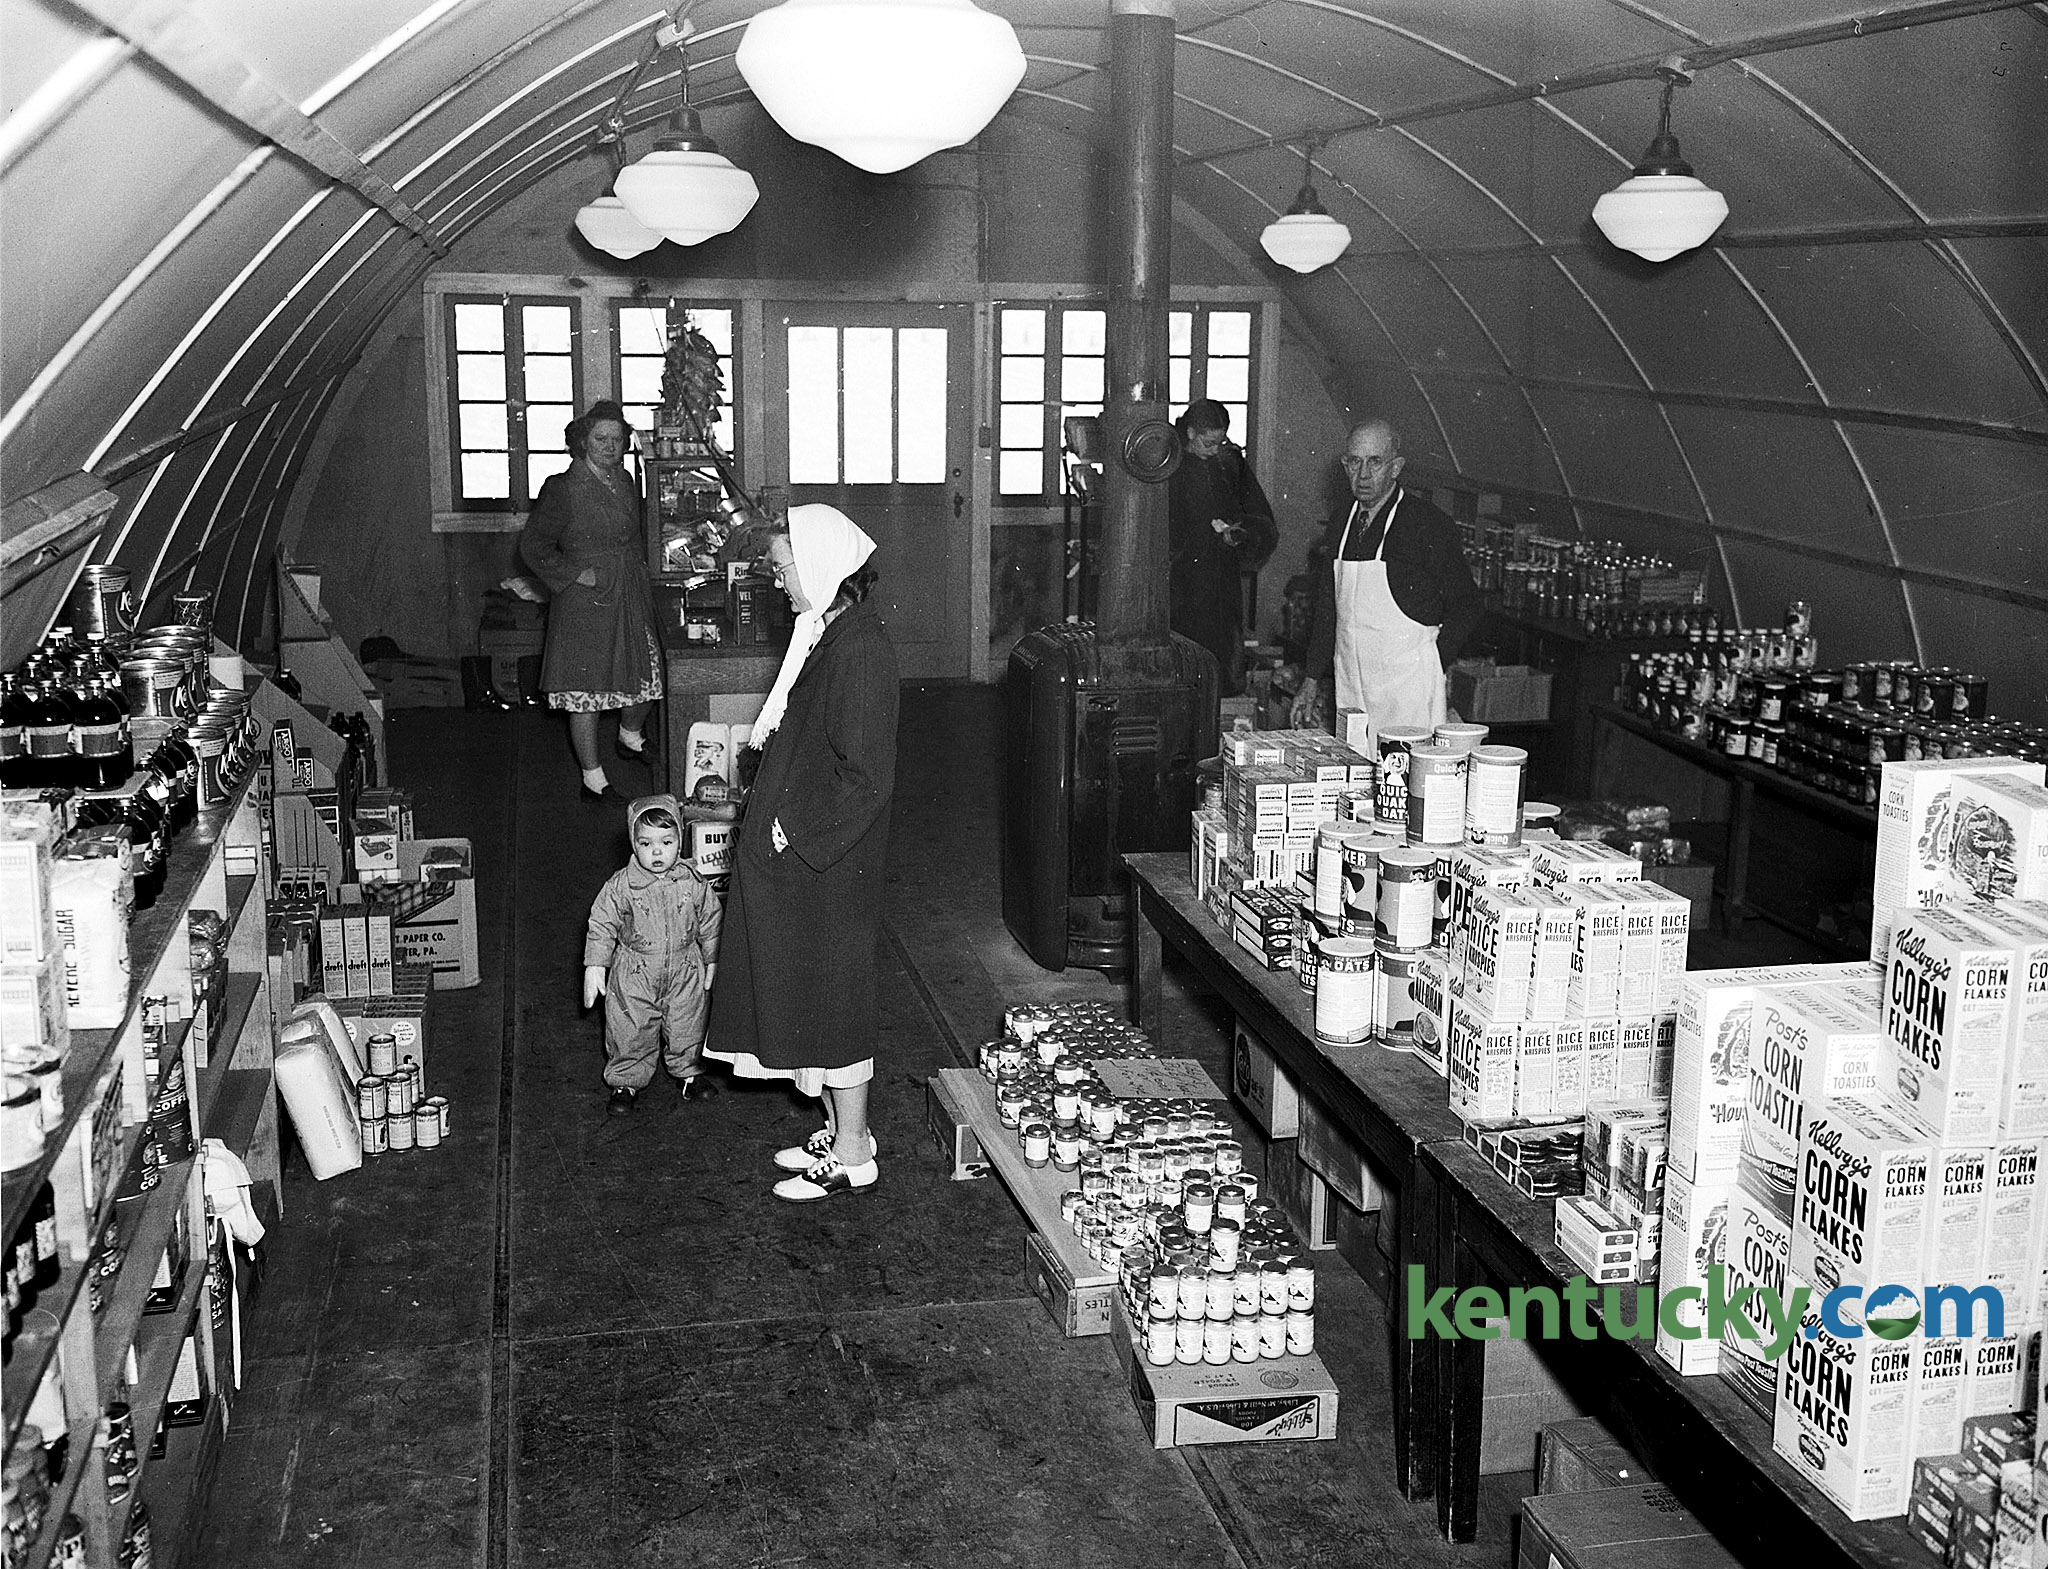 White apron in store - Interior View Of The Community Grocery Store In Cooperstown On The University Of Kentucky Campus